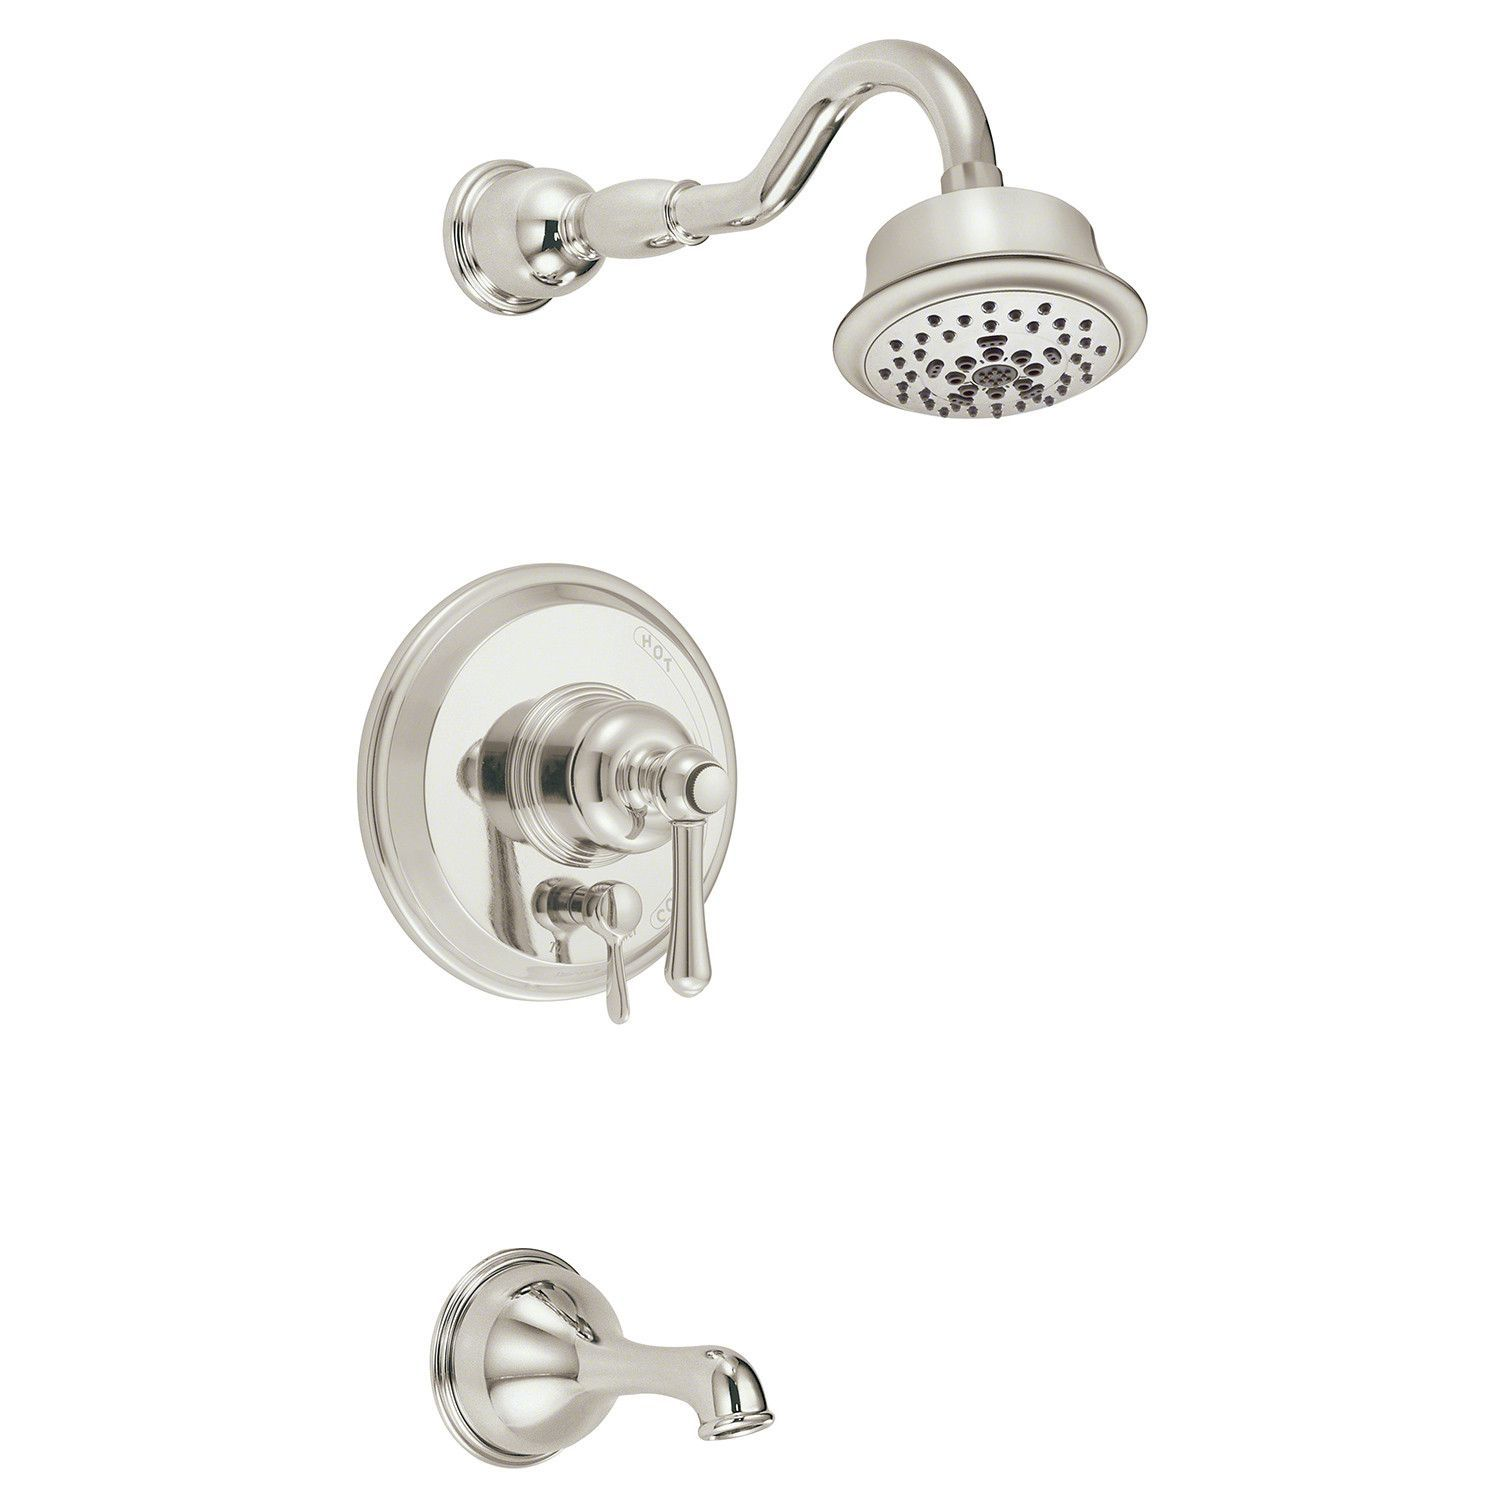 Danze D502257PNVT Polished Nickel Pressure Balanced Tub and Shower ...